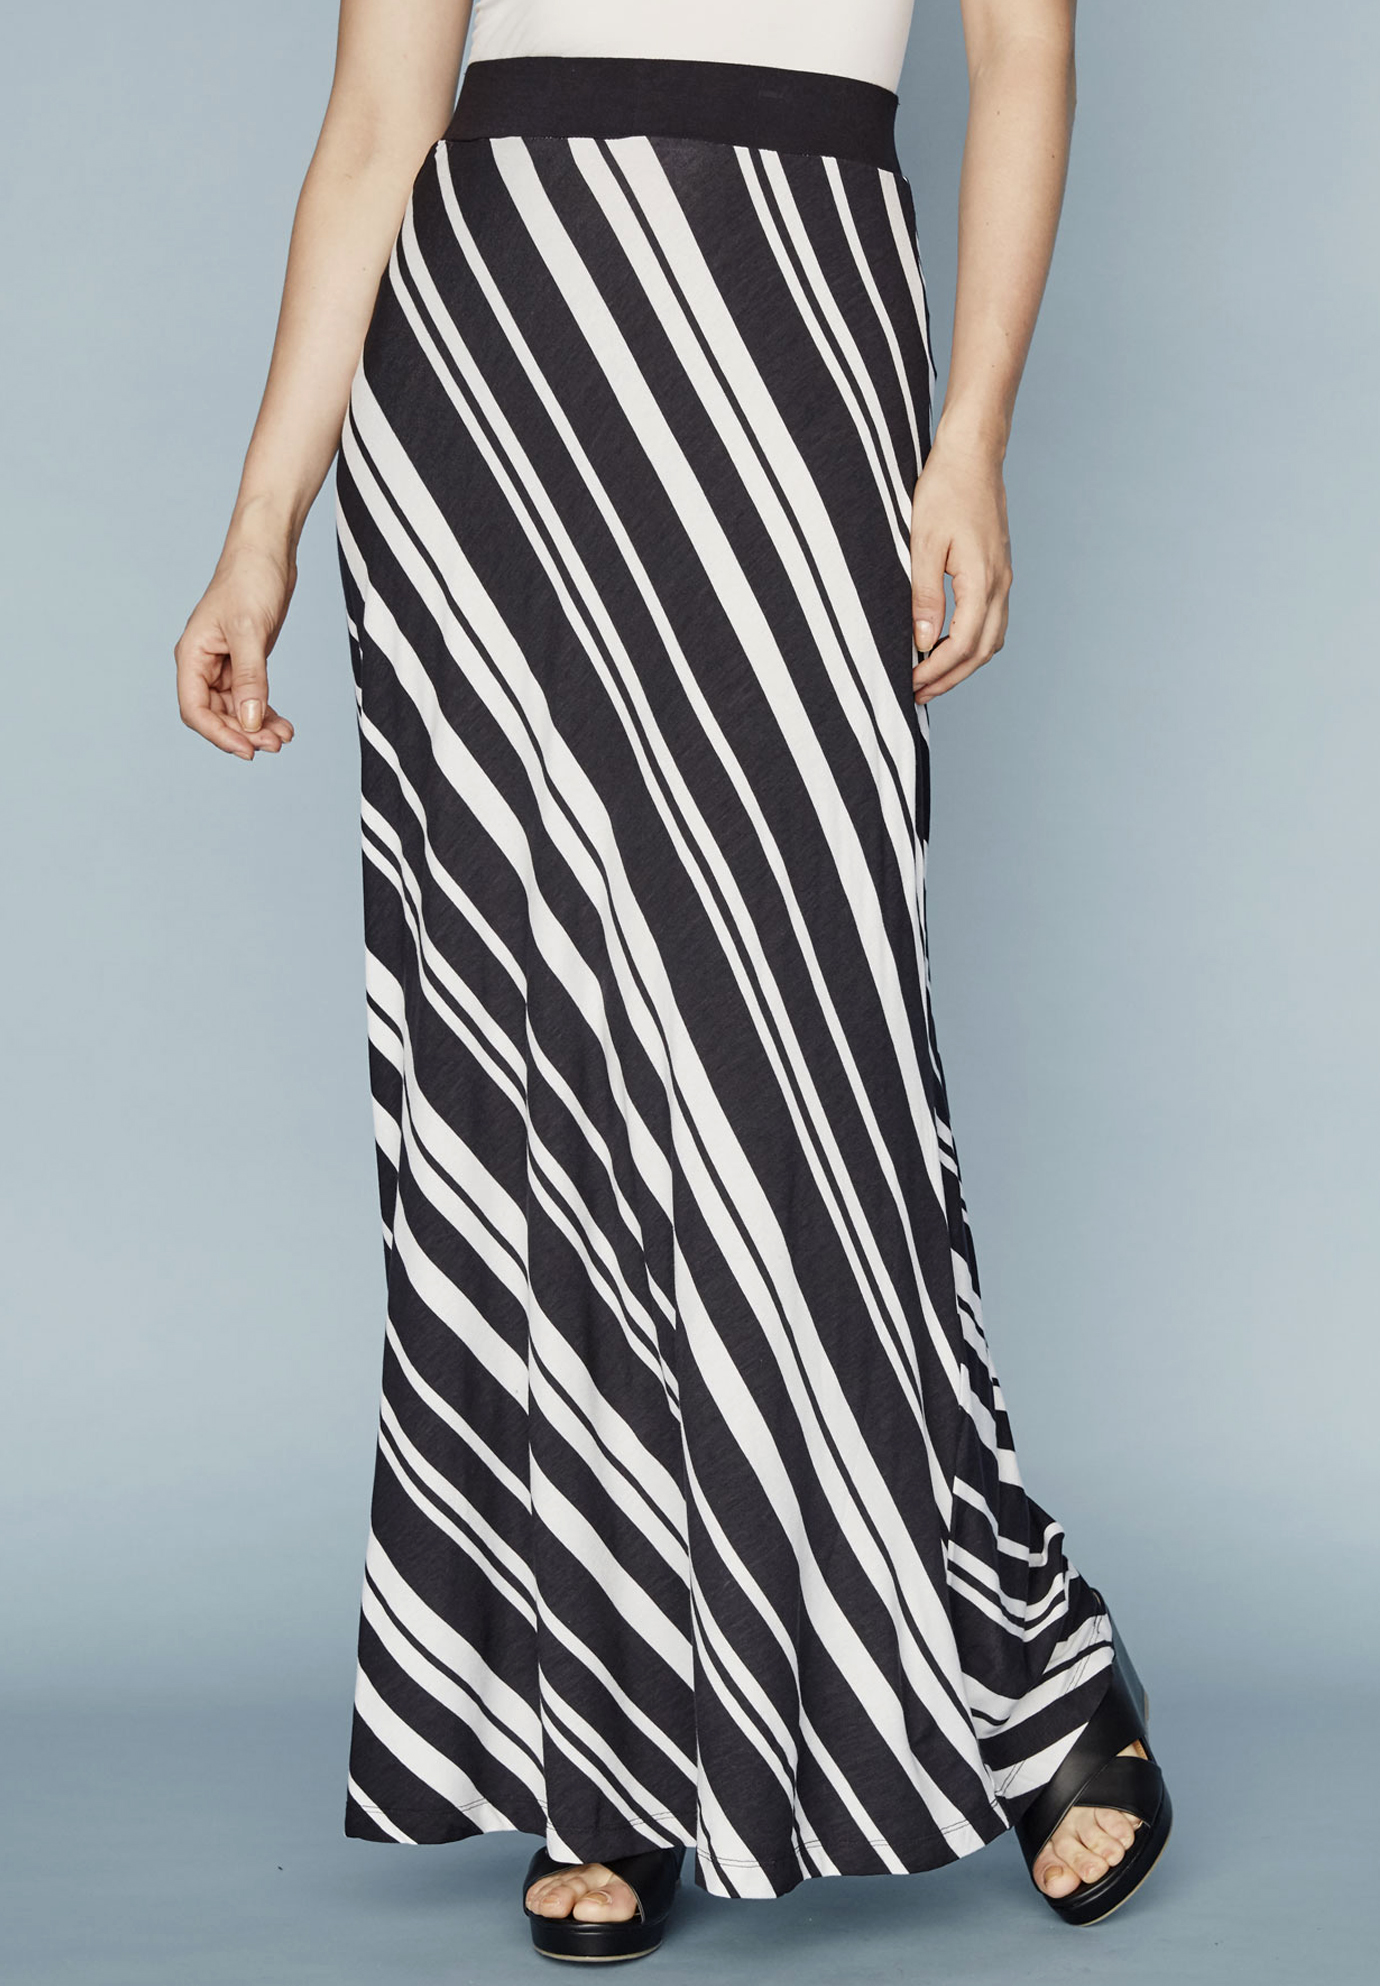 Maxi Skirt in Stretch Jersey, BLACK WHITE STRIPE, hi-res